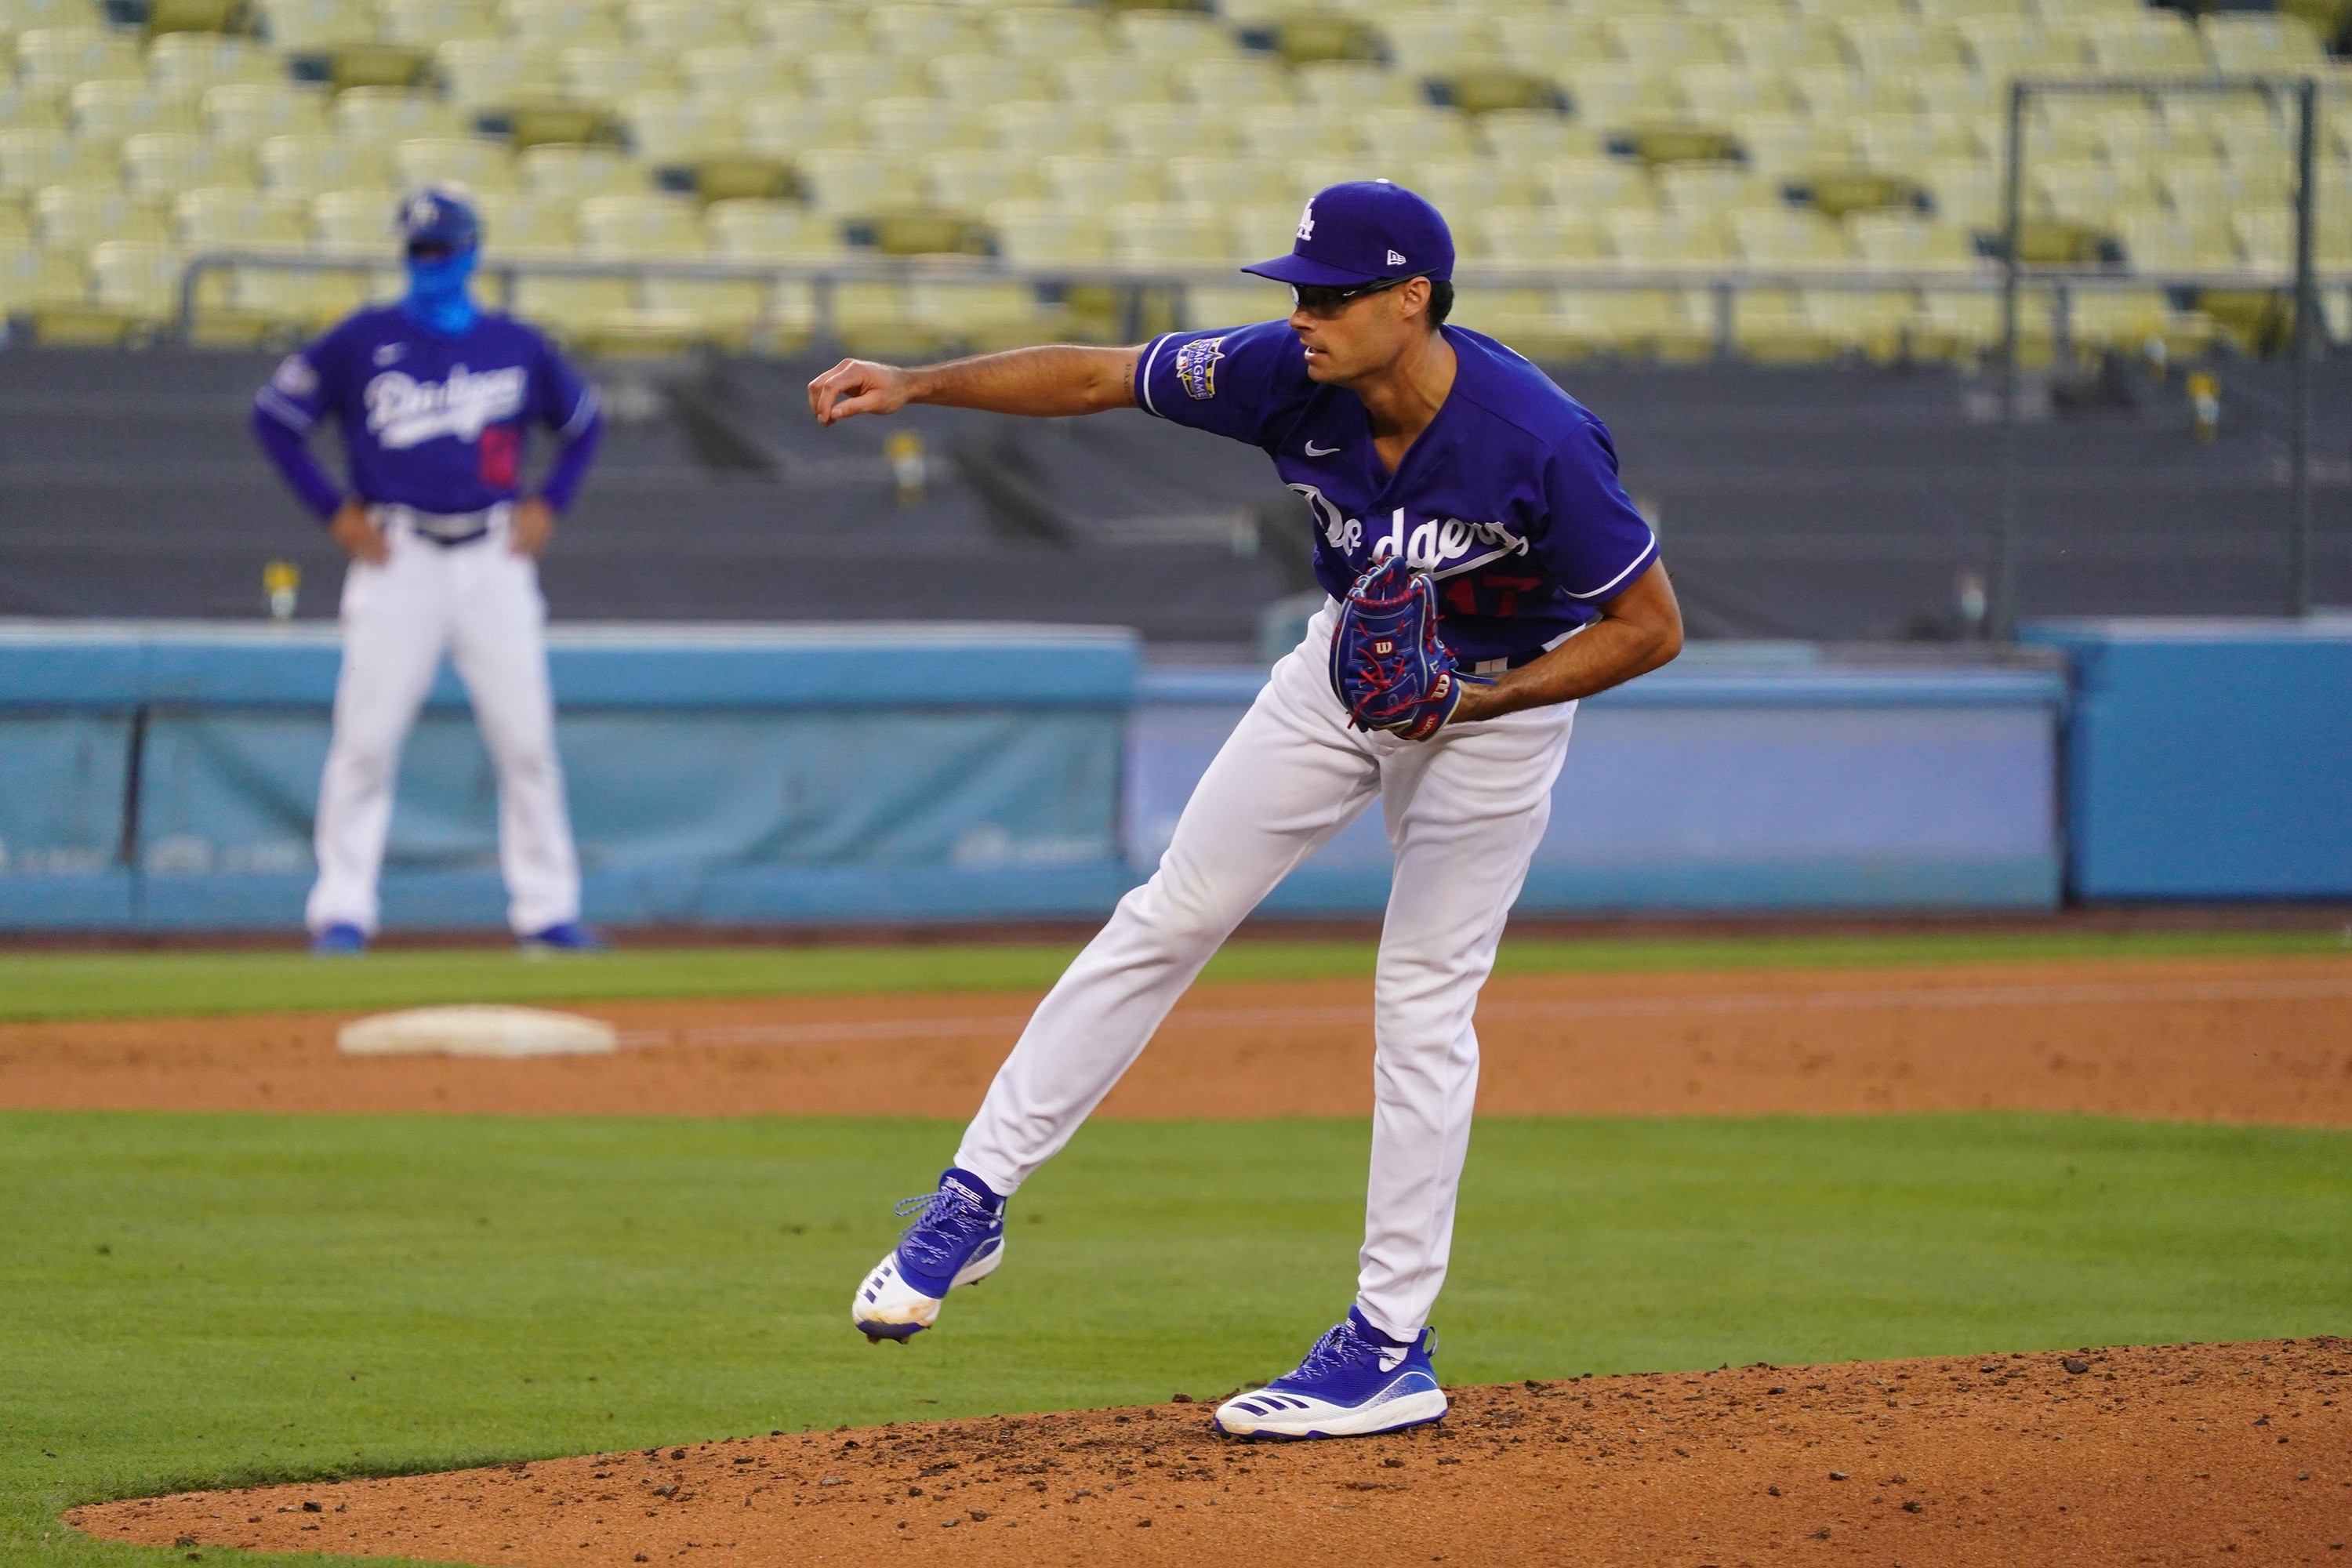 Time Off Helped Joe Kelly Find His Four Seamer Again I Feel Great By Rowan Kavner Dodger Insider Between r.kelly and joe who's songs d'yu prefer? time off helped joe kelly find his four